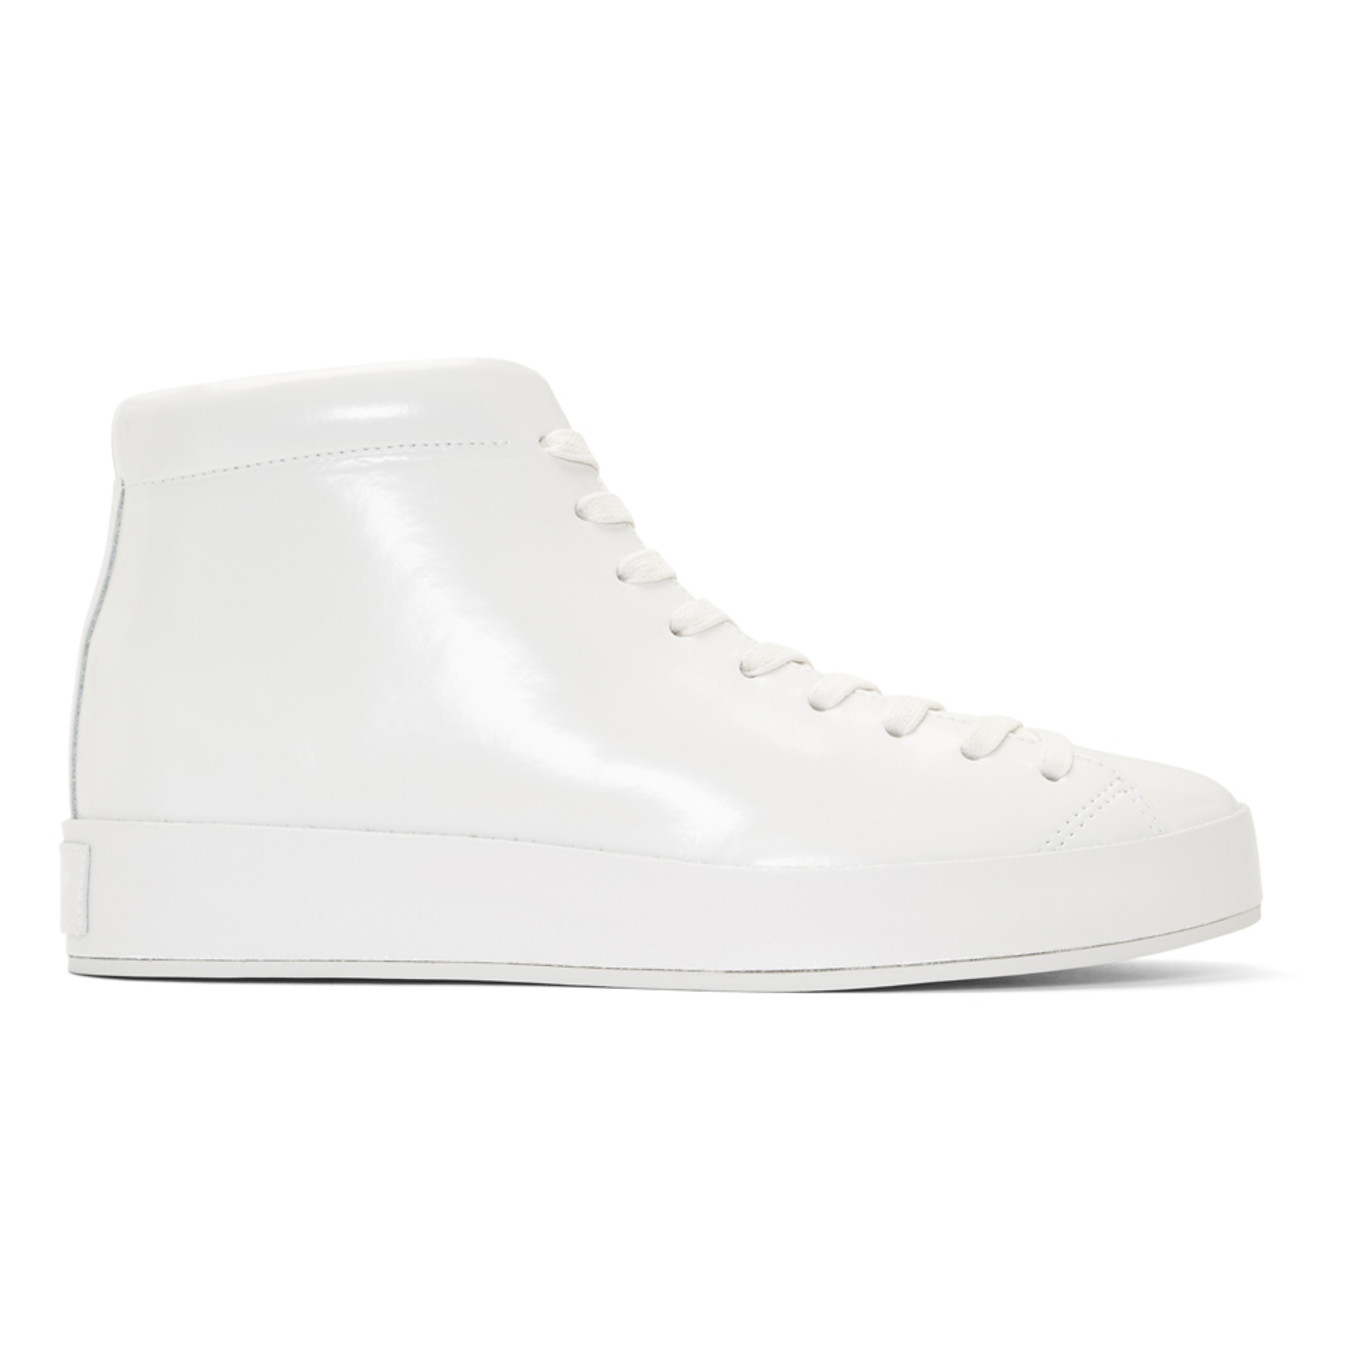 White Patent Rb1 High Top Sneakers by Rag & Bone